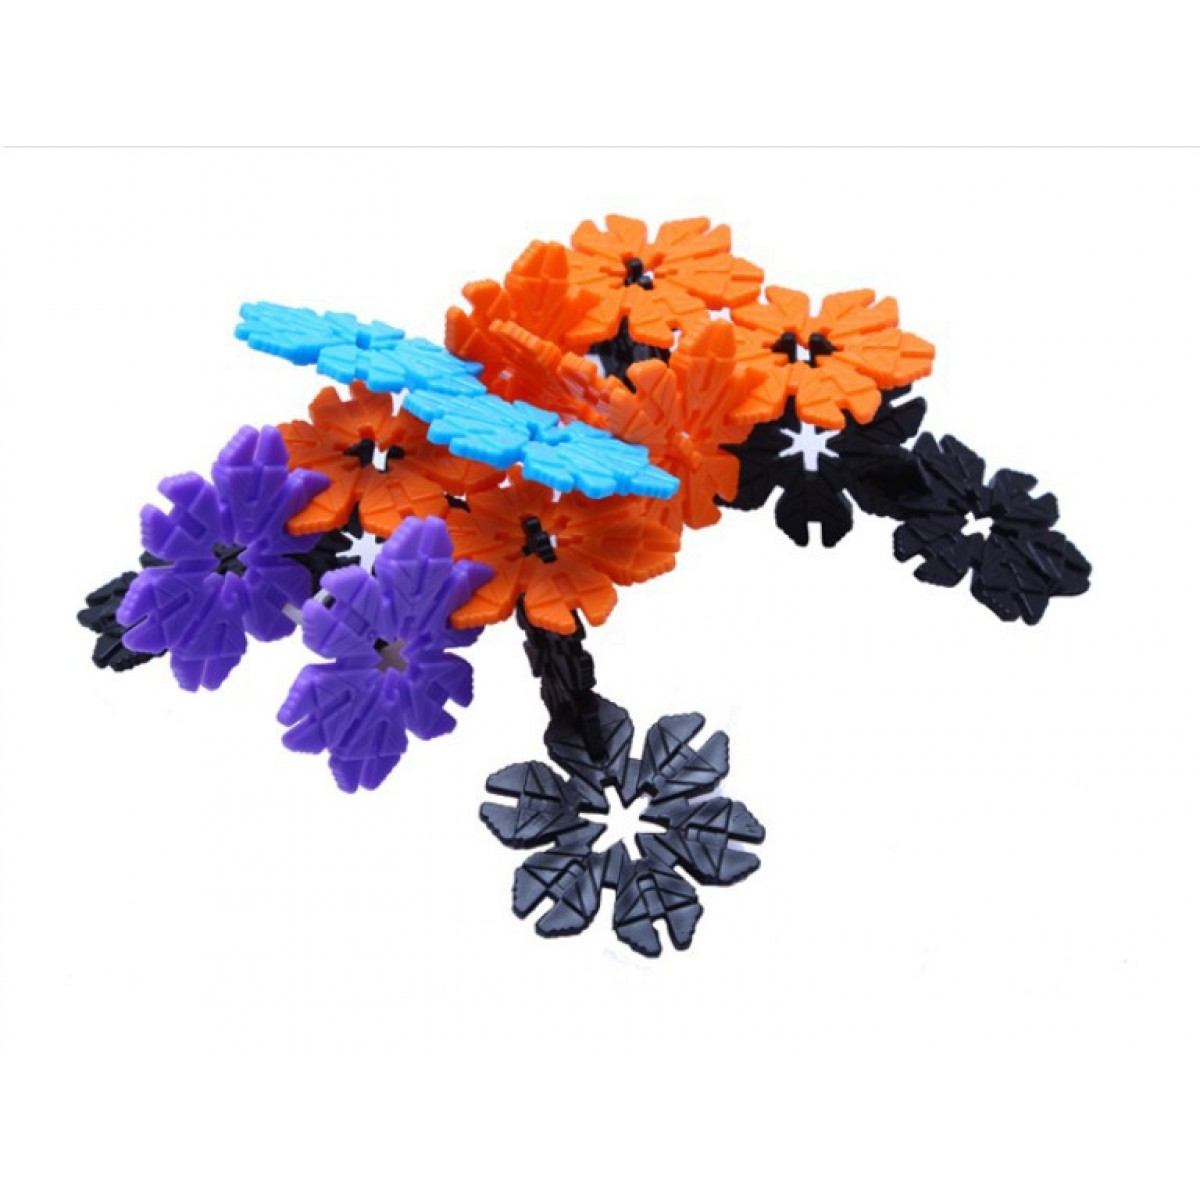 Cheap 320 pcs flower building blocks toy sale online with free cheap 320 pcs flower building blocks toy sale online with free delivery magetoy izmirmasajfo